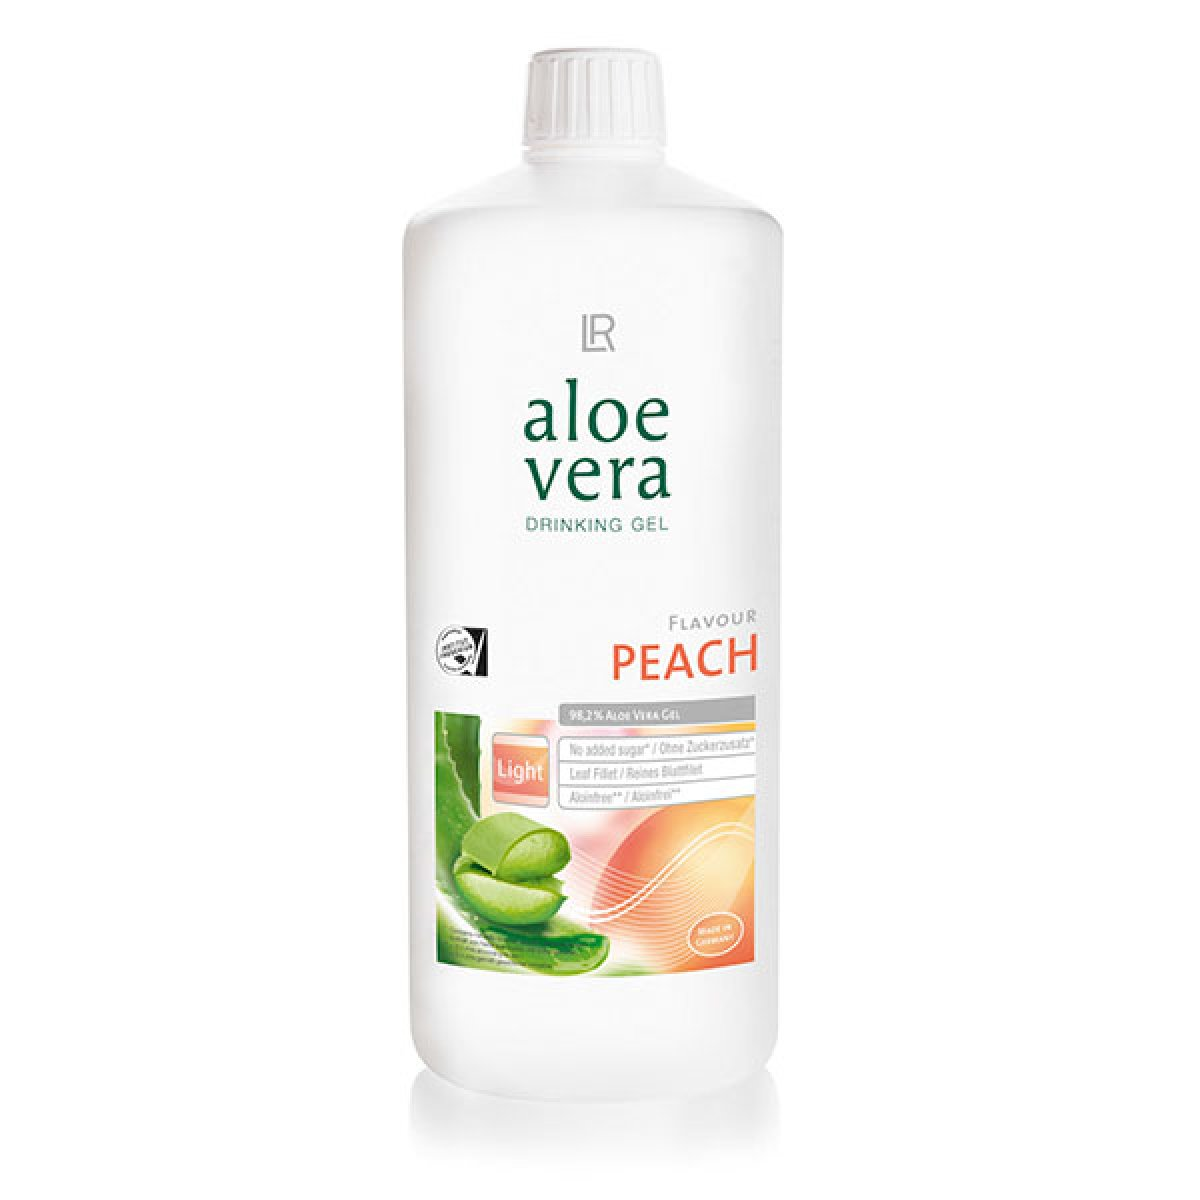 Aloe-Vera-Drinking-Gel-Peach-1000-ml.jpg